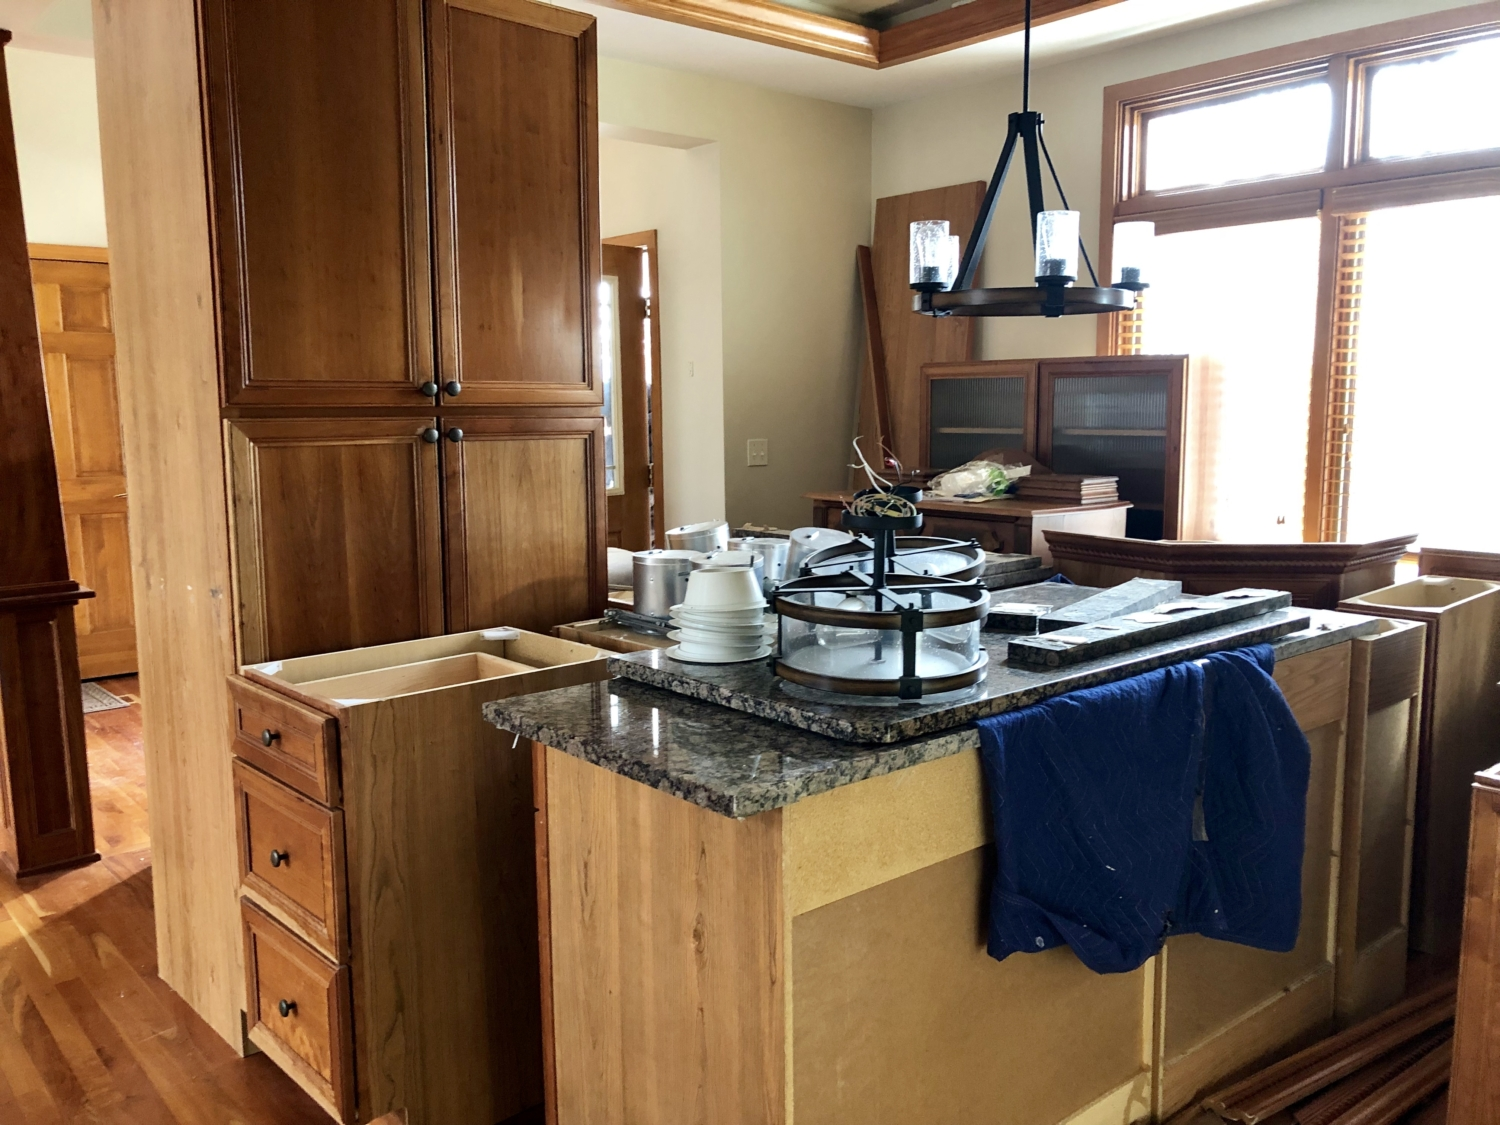 For This Project Our Team Did A Great Job Of Deconstructing The Beautiful Cherry Cabinetry That Was Unfortunately Not Working Homeowners